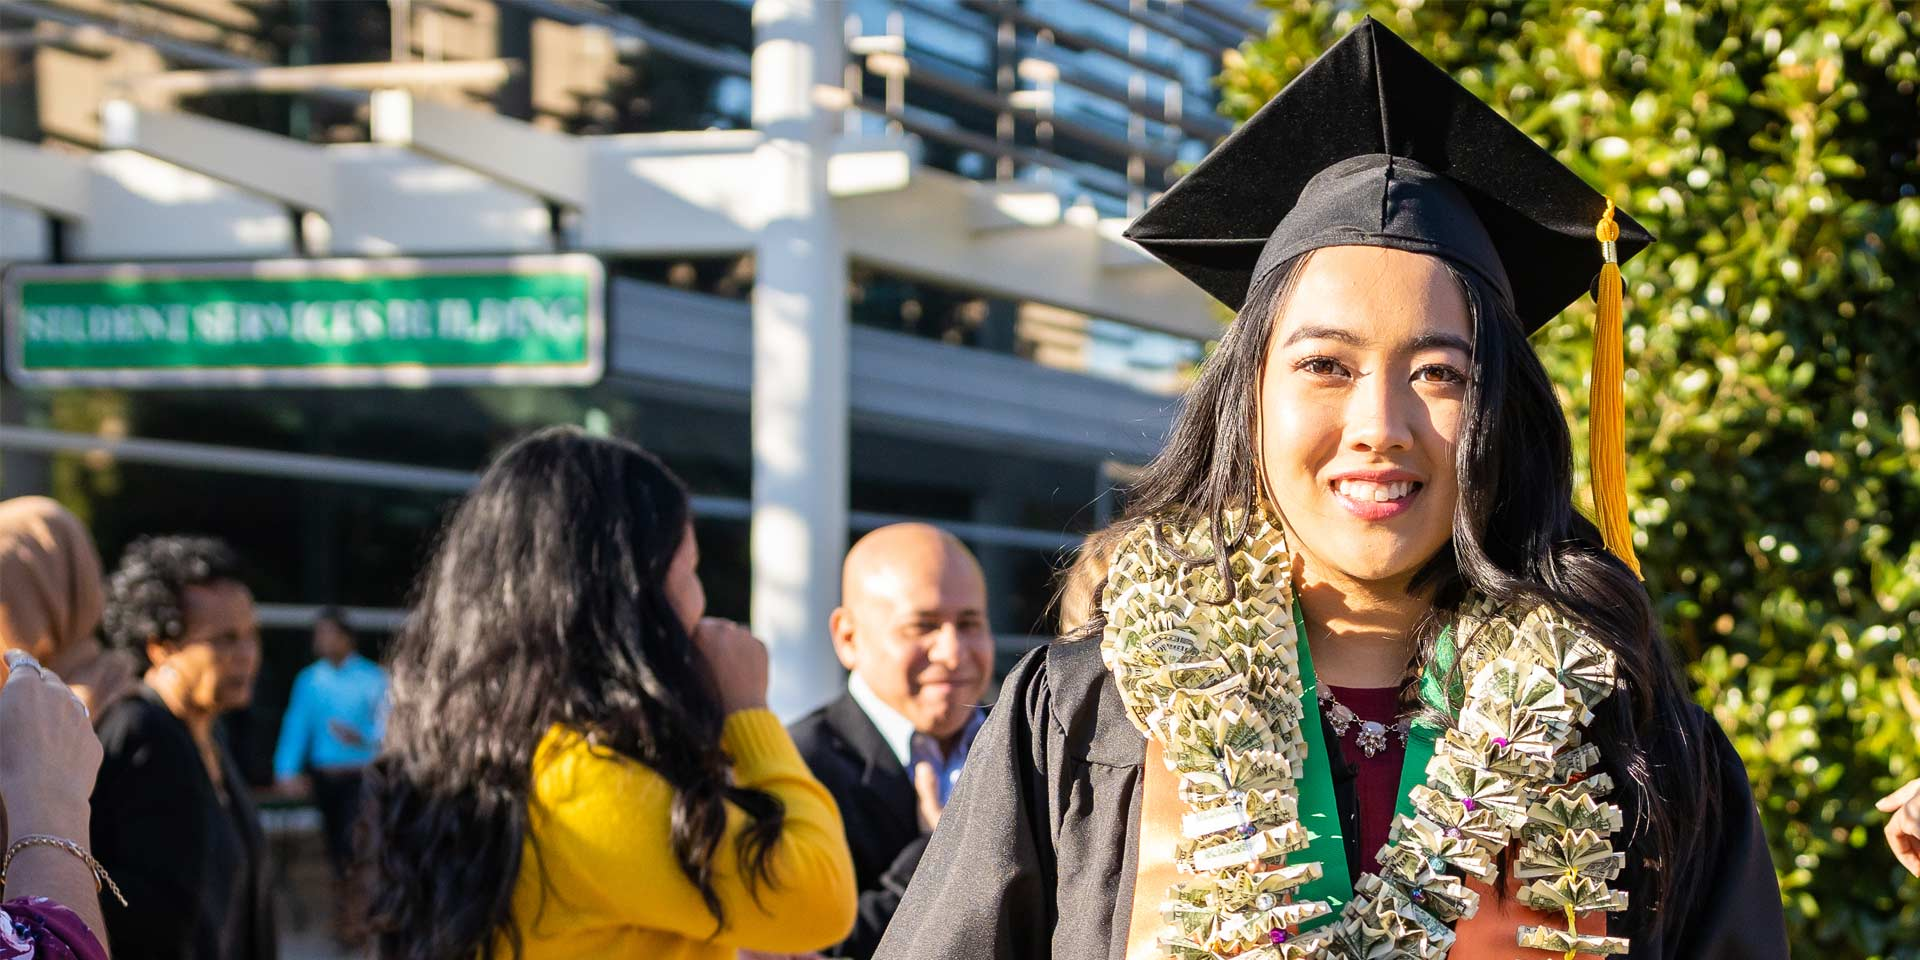 Marisa Homan, who graduated with a bachelor's degree in healthcare management, wore a homemade lei made of money.